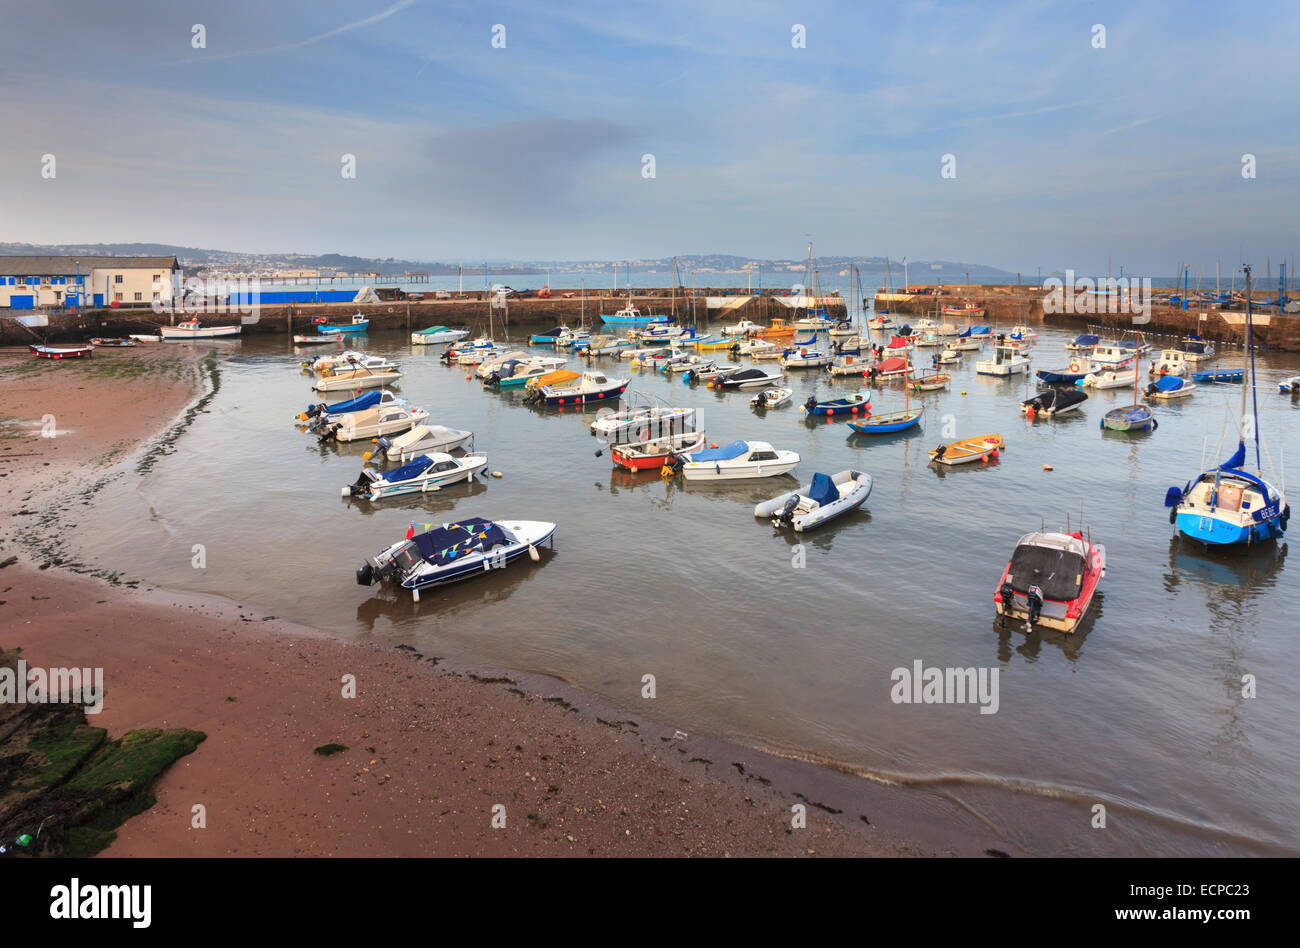 Boats in Paignton Harbour captured shortly before sunset. - Stock Image